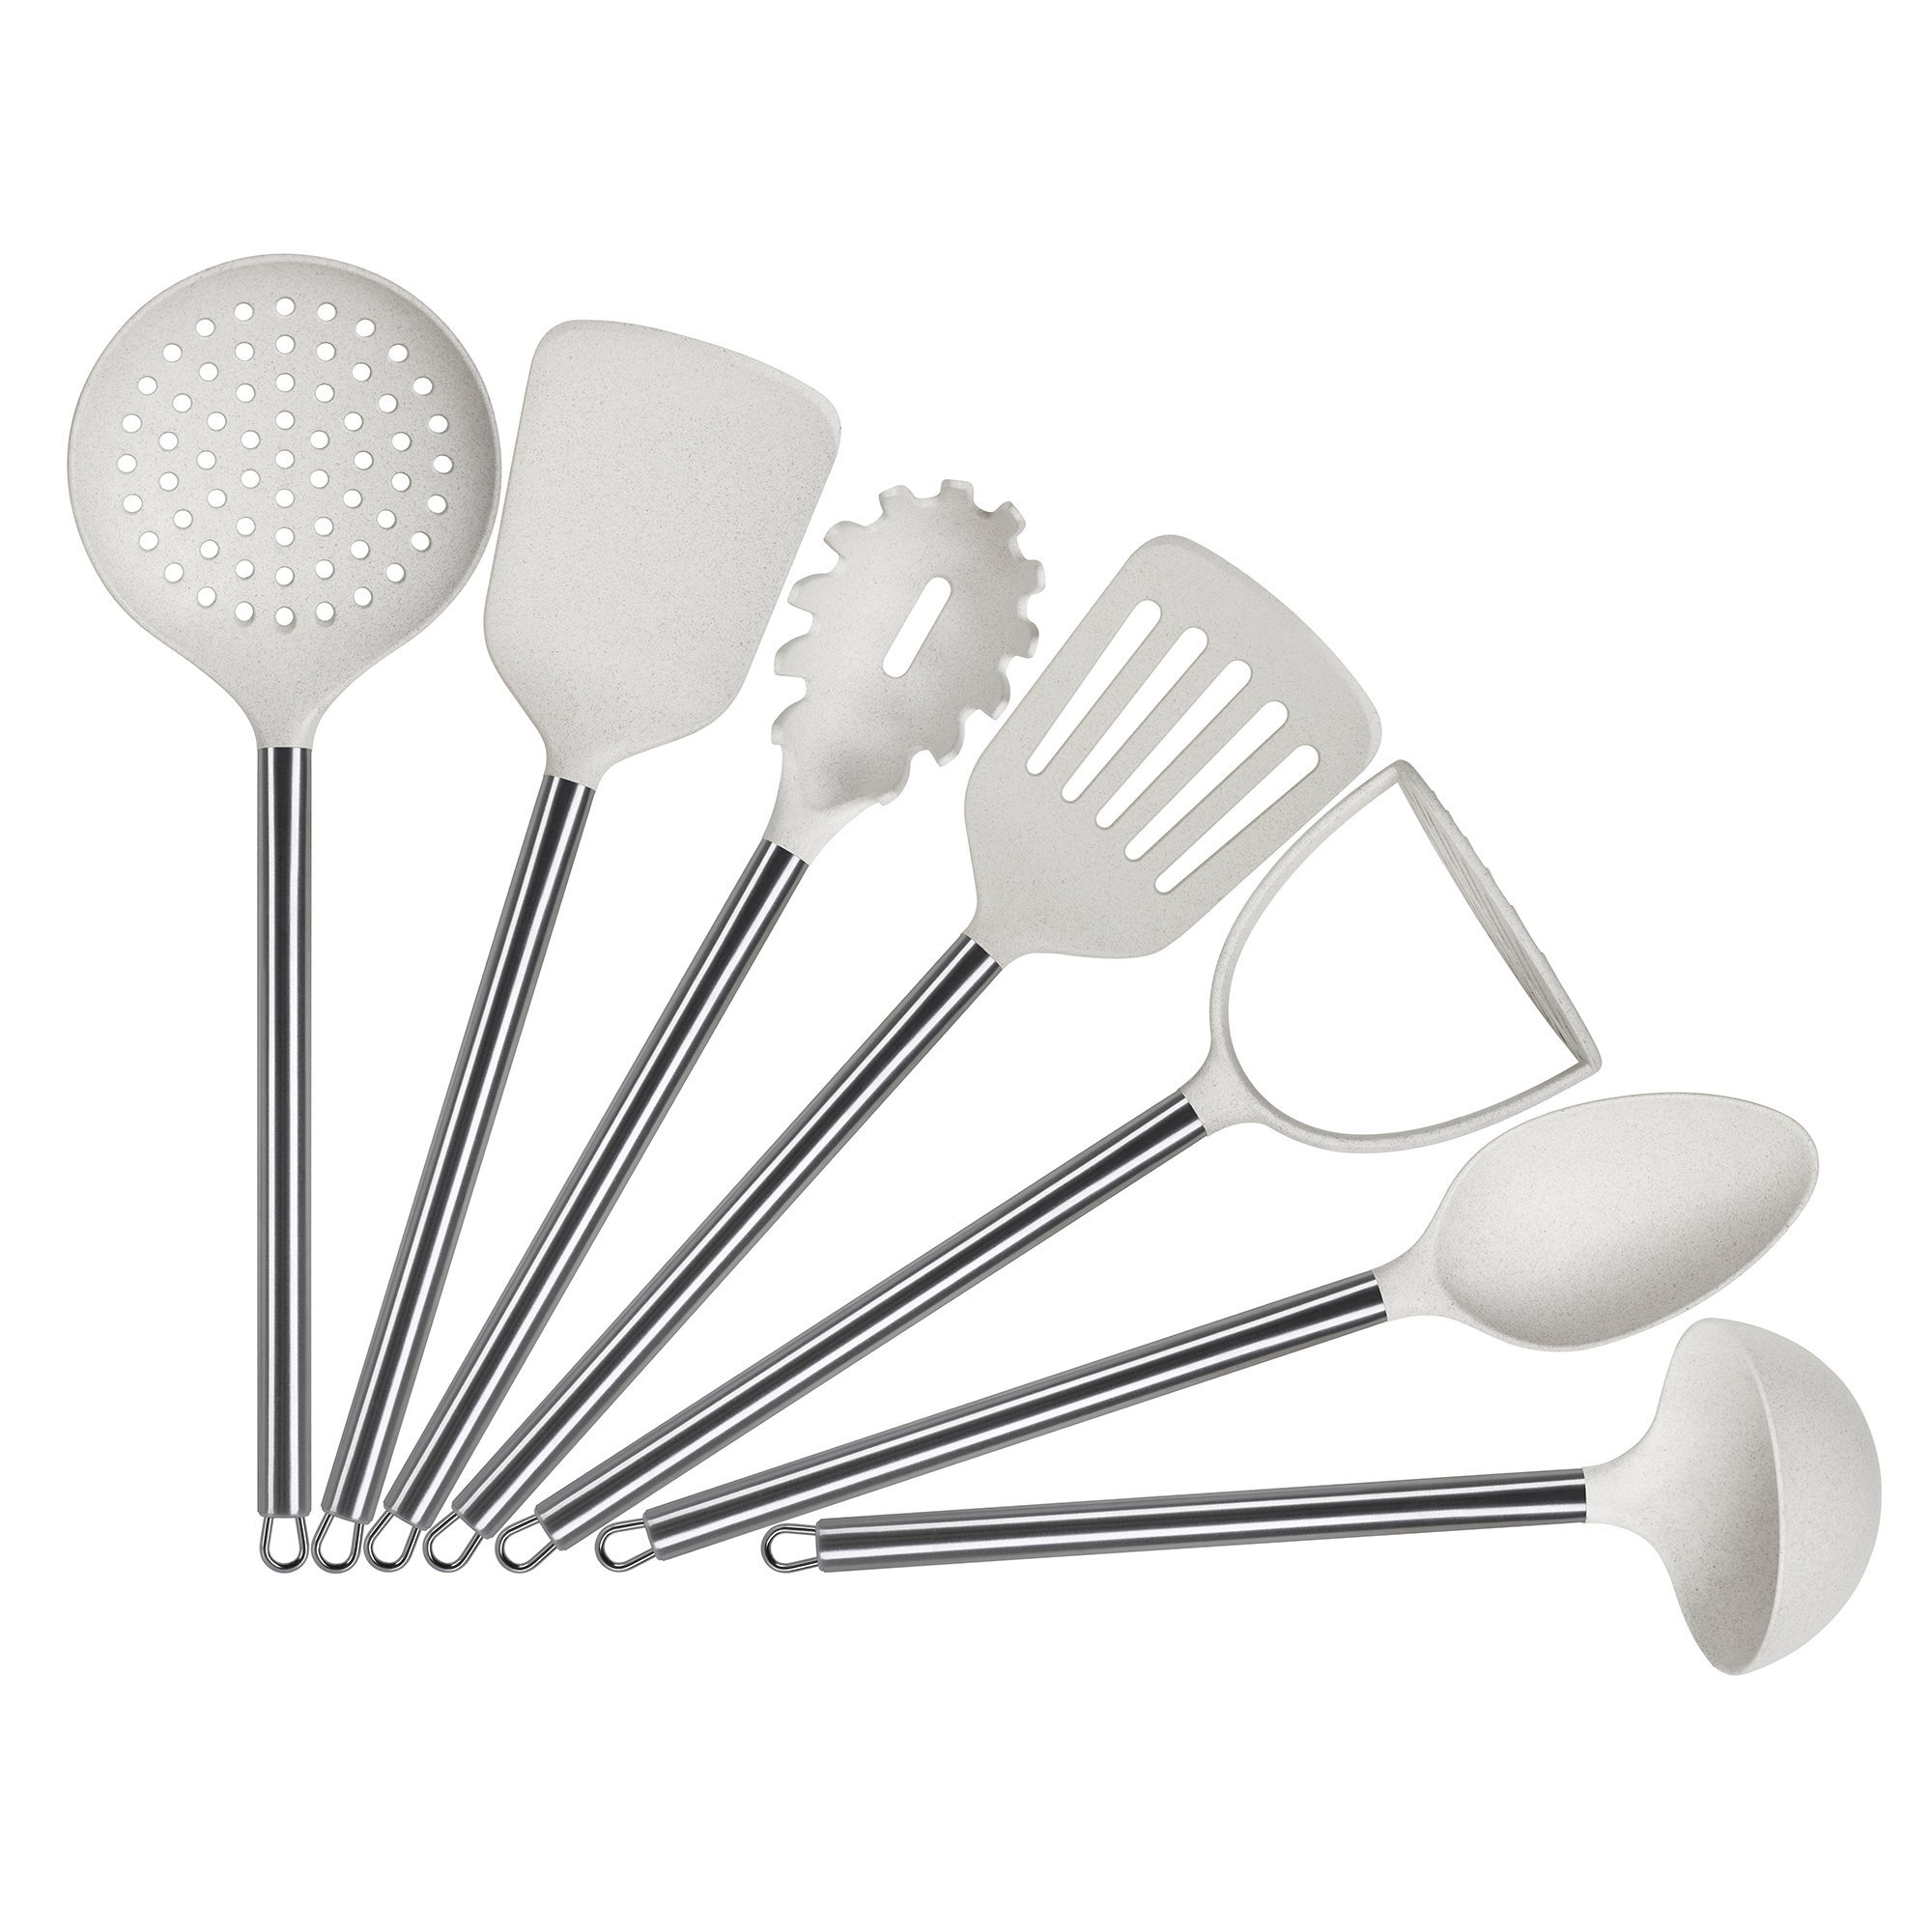 ELFRhino Cooking Utensil Set Home Kitchen Cooking Utensils Tool and Gadget Set of 7 Includes Slotted Spoon Spatula Spaghetti Server Slotted Spatula Potato Masher Long Spoon Ladle